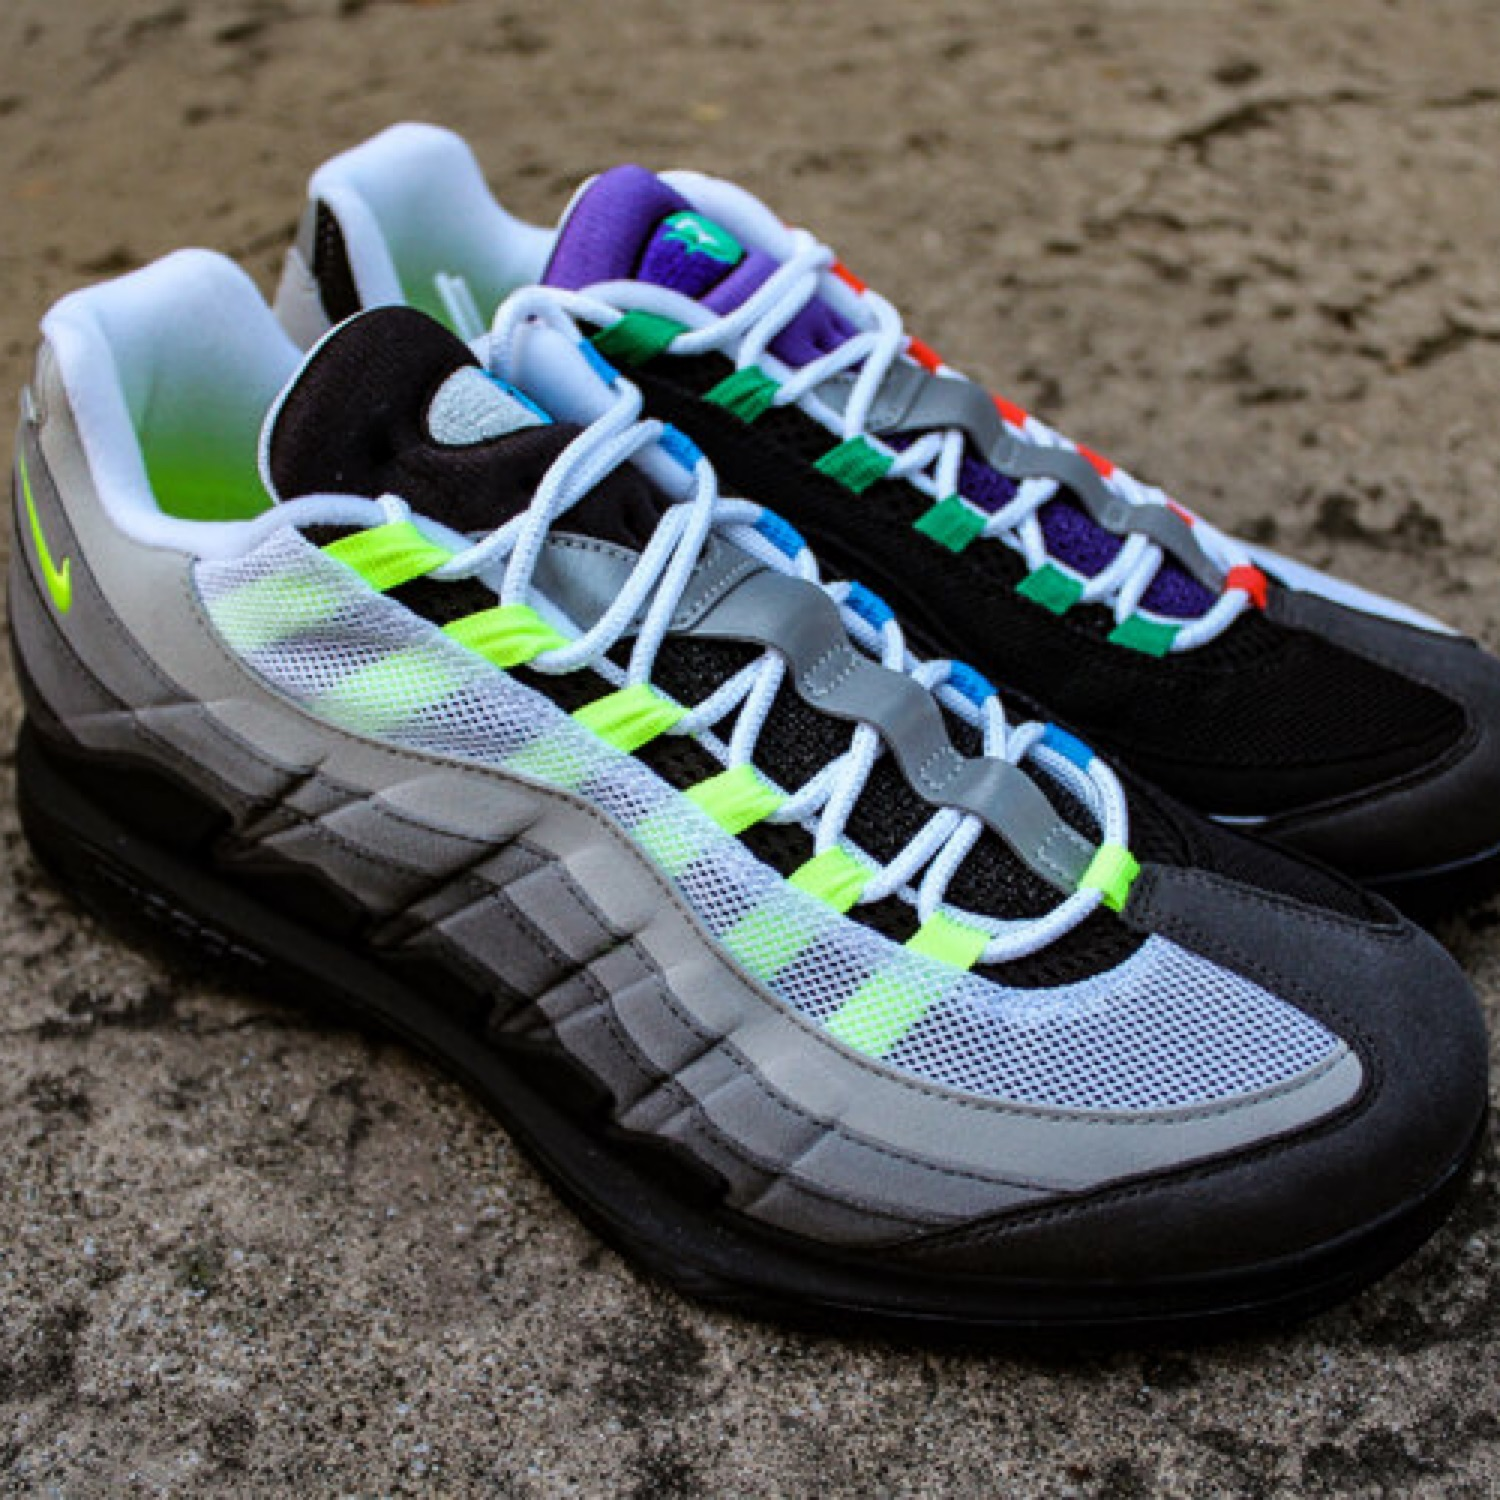 buy popular ec418 894f3 Nikecourt Vaport Rf X Air Max 95 Greedy